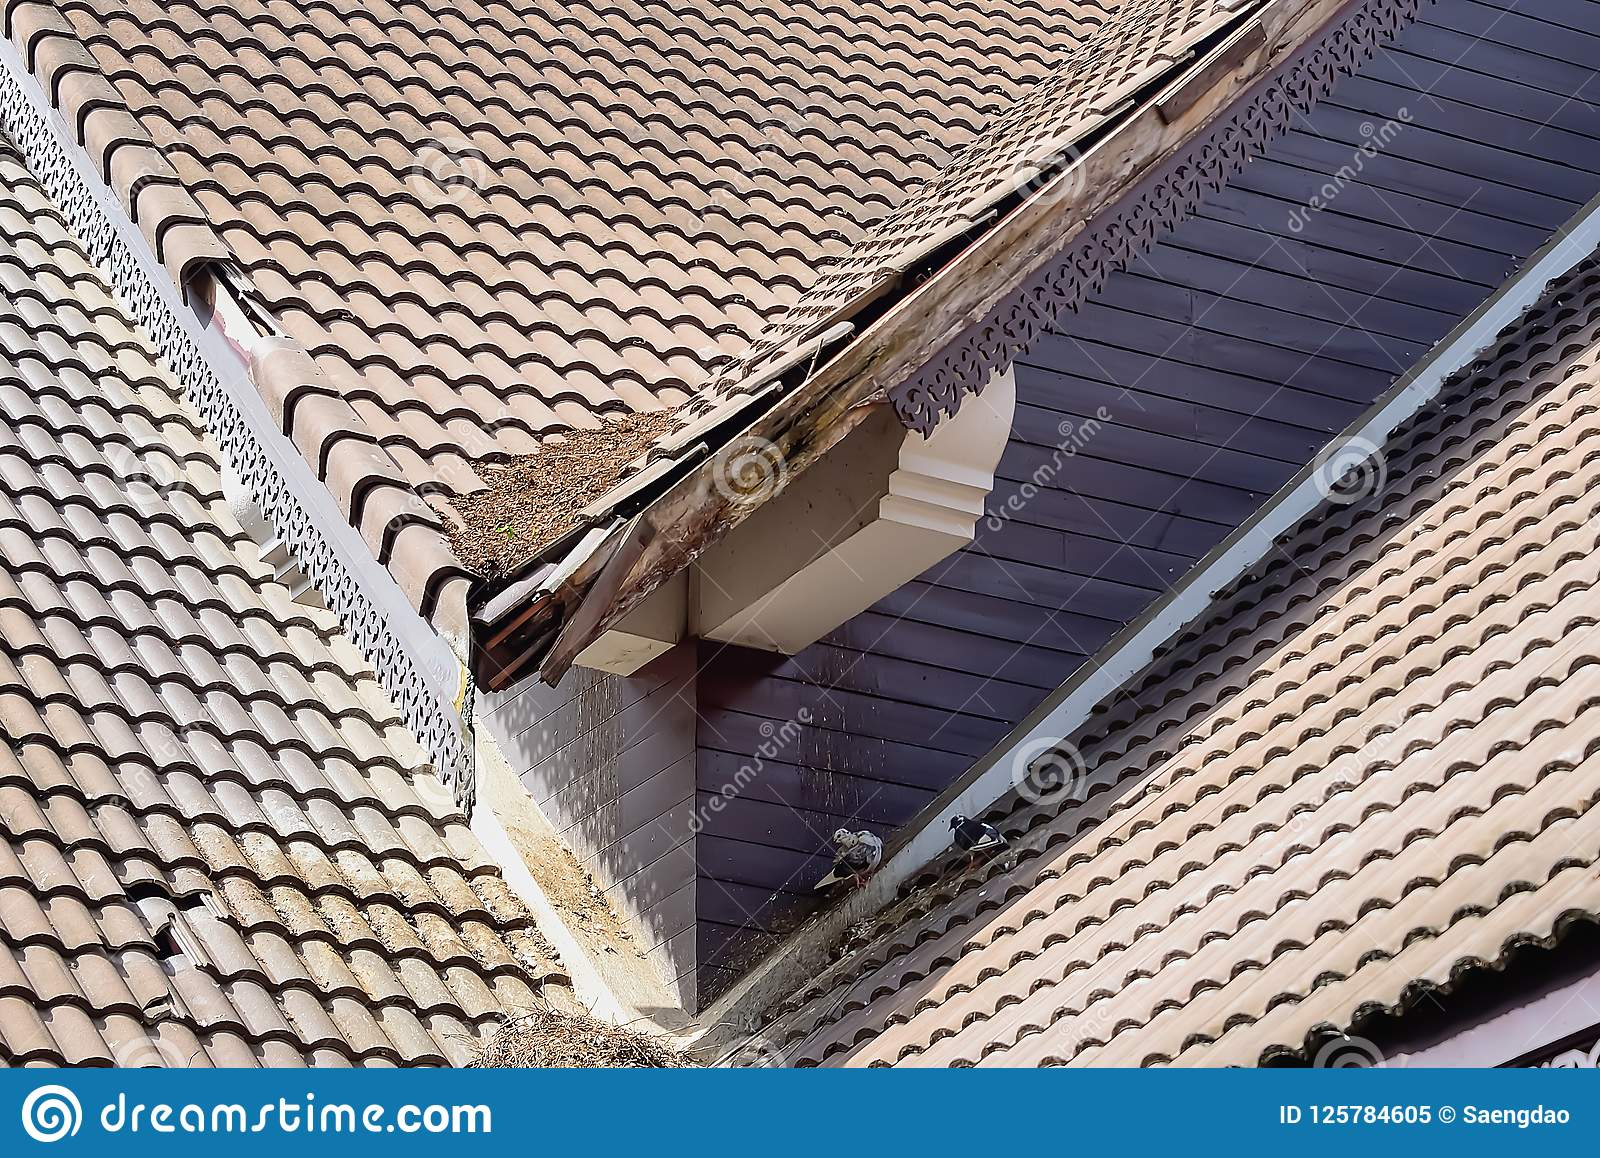 Home roof damage after storm surge.